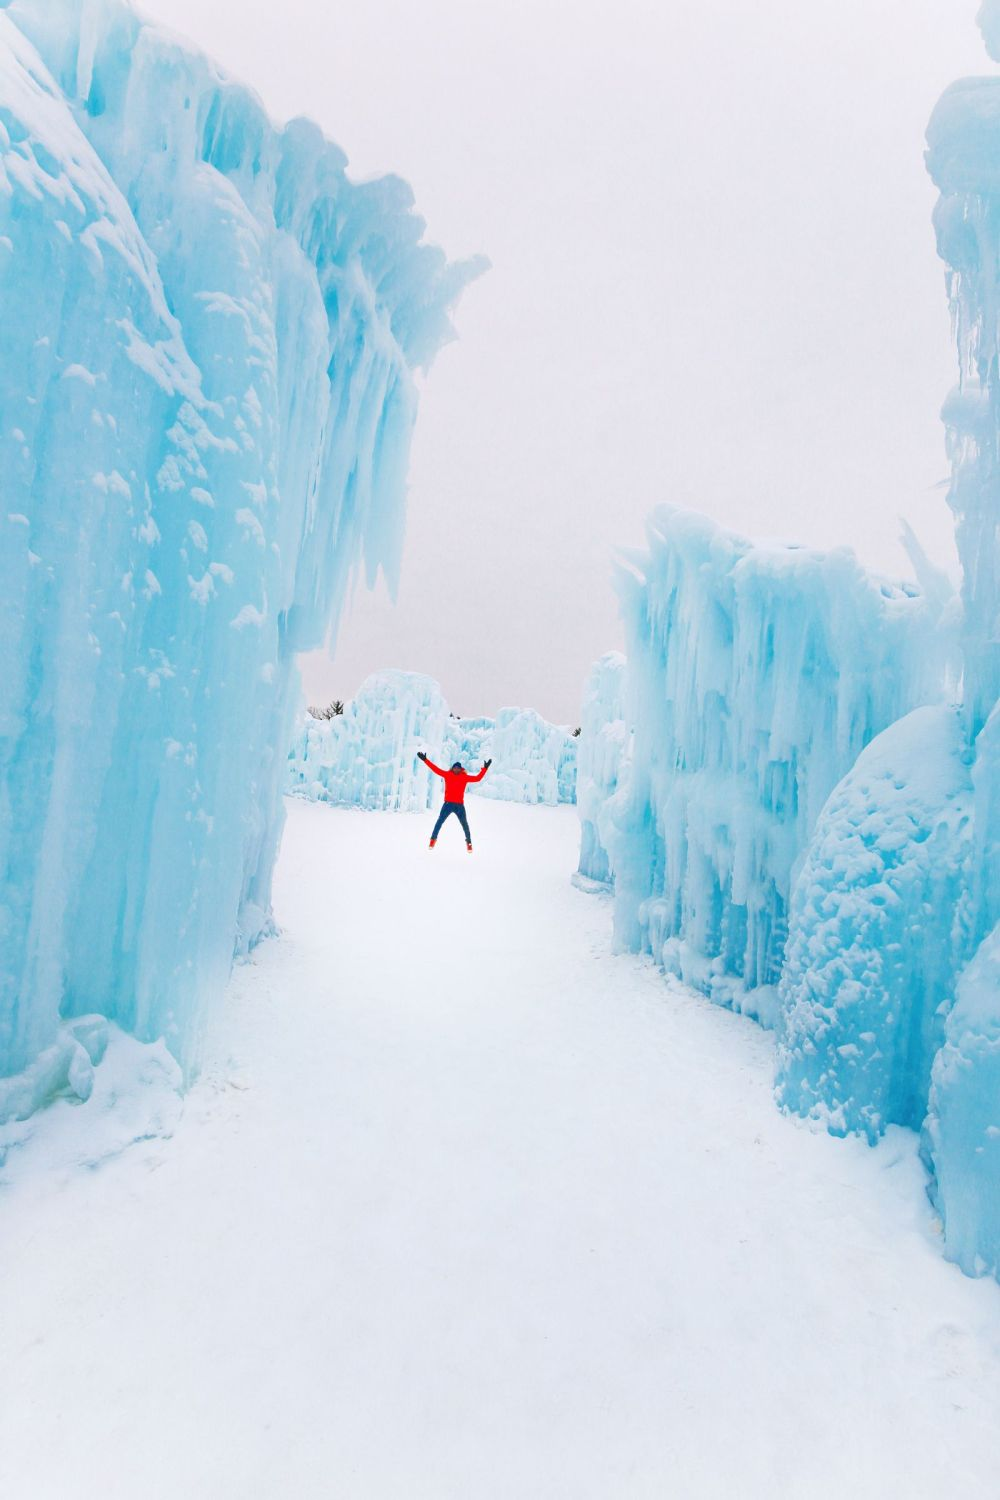 Fat Biking Across The Frozen River Valley To The Ice Castles Of Edmonton, Canada (58)